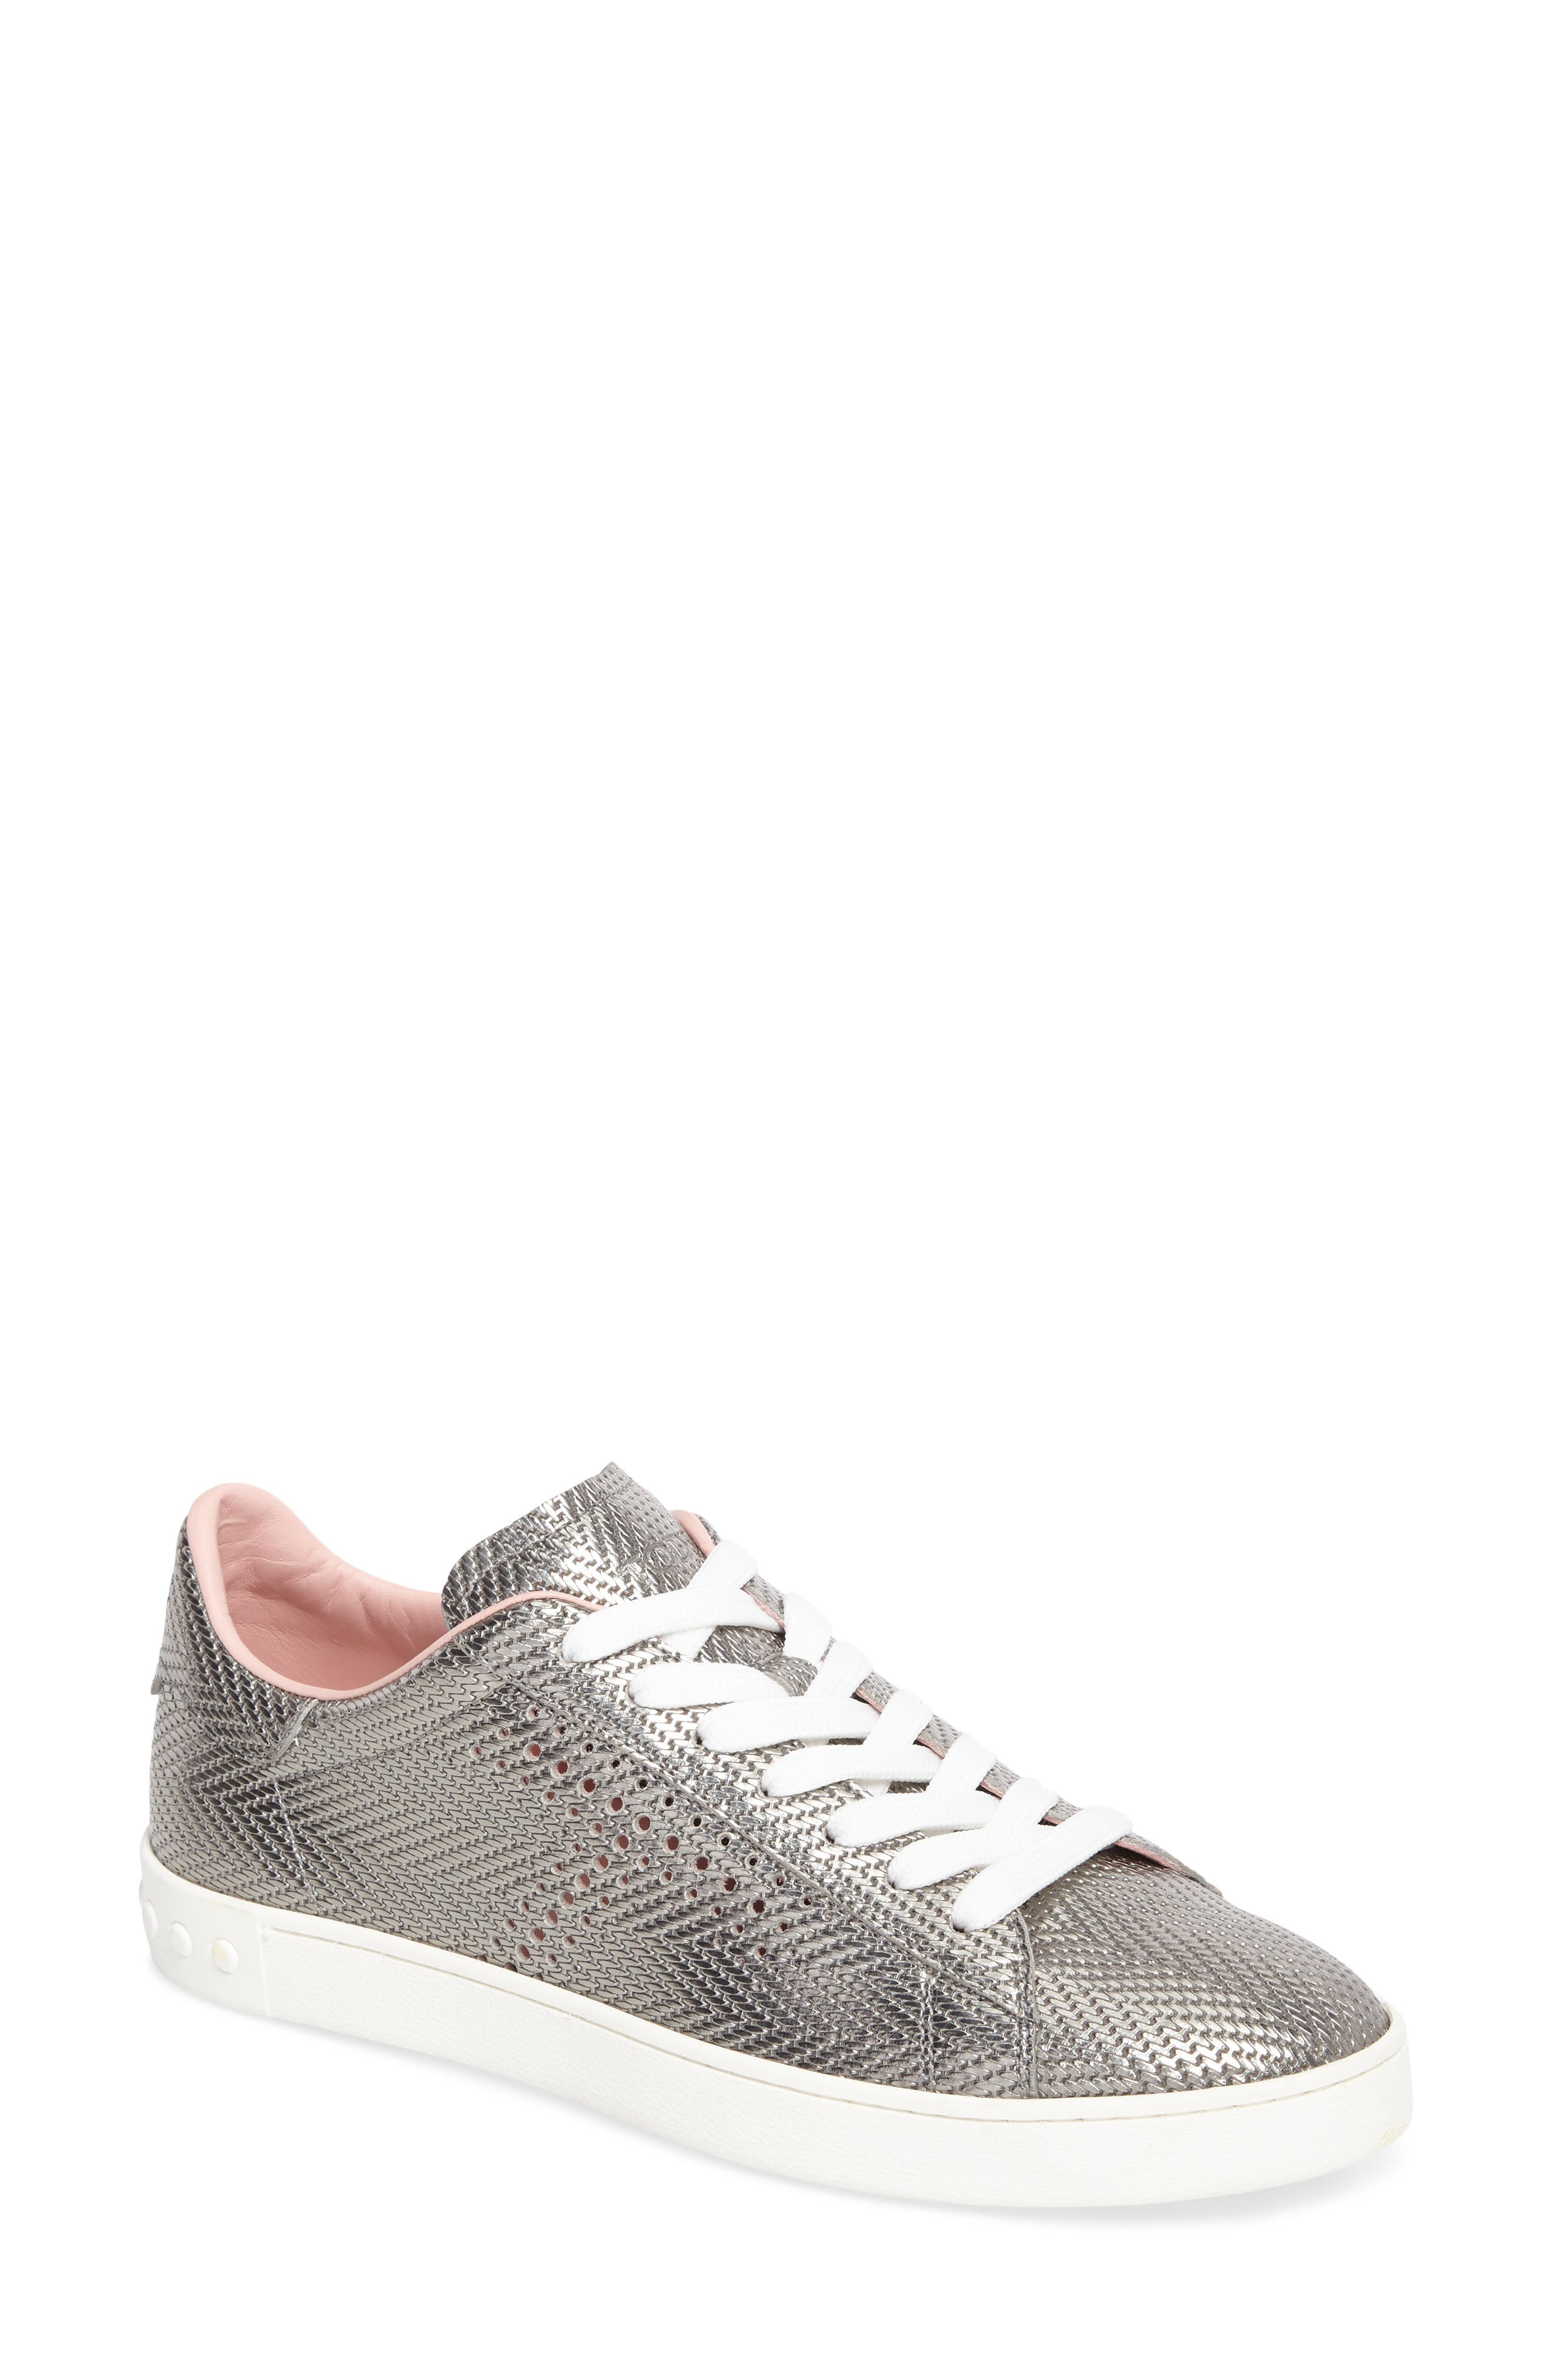 Perforated T Sneaker,                             Main thumbnail 1, color,                             040